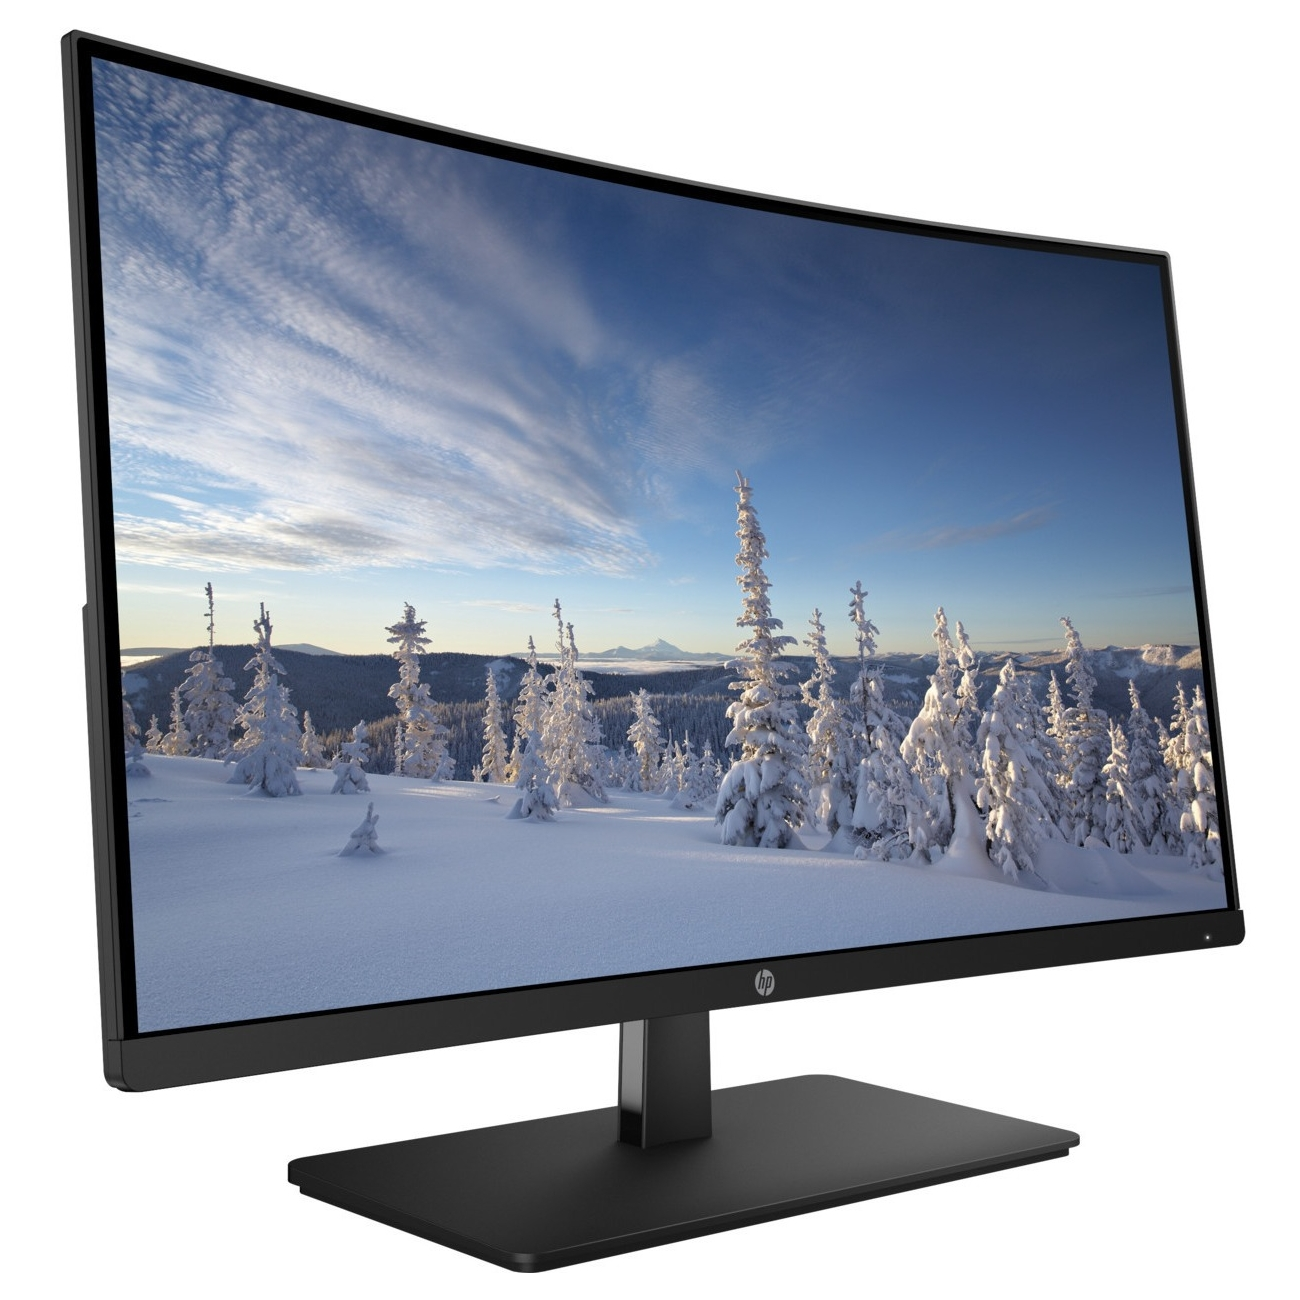 Best 27 Monitors - HP 27-inch FHD Curved Monitor (27b, Black) Review